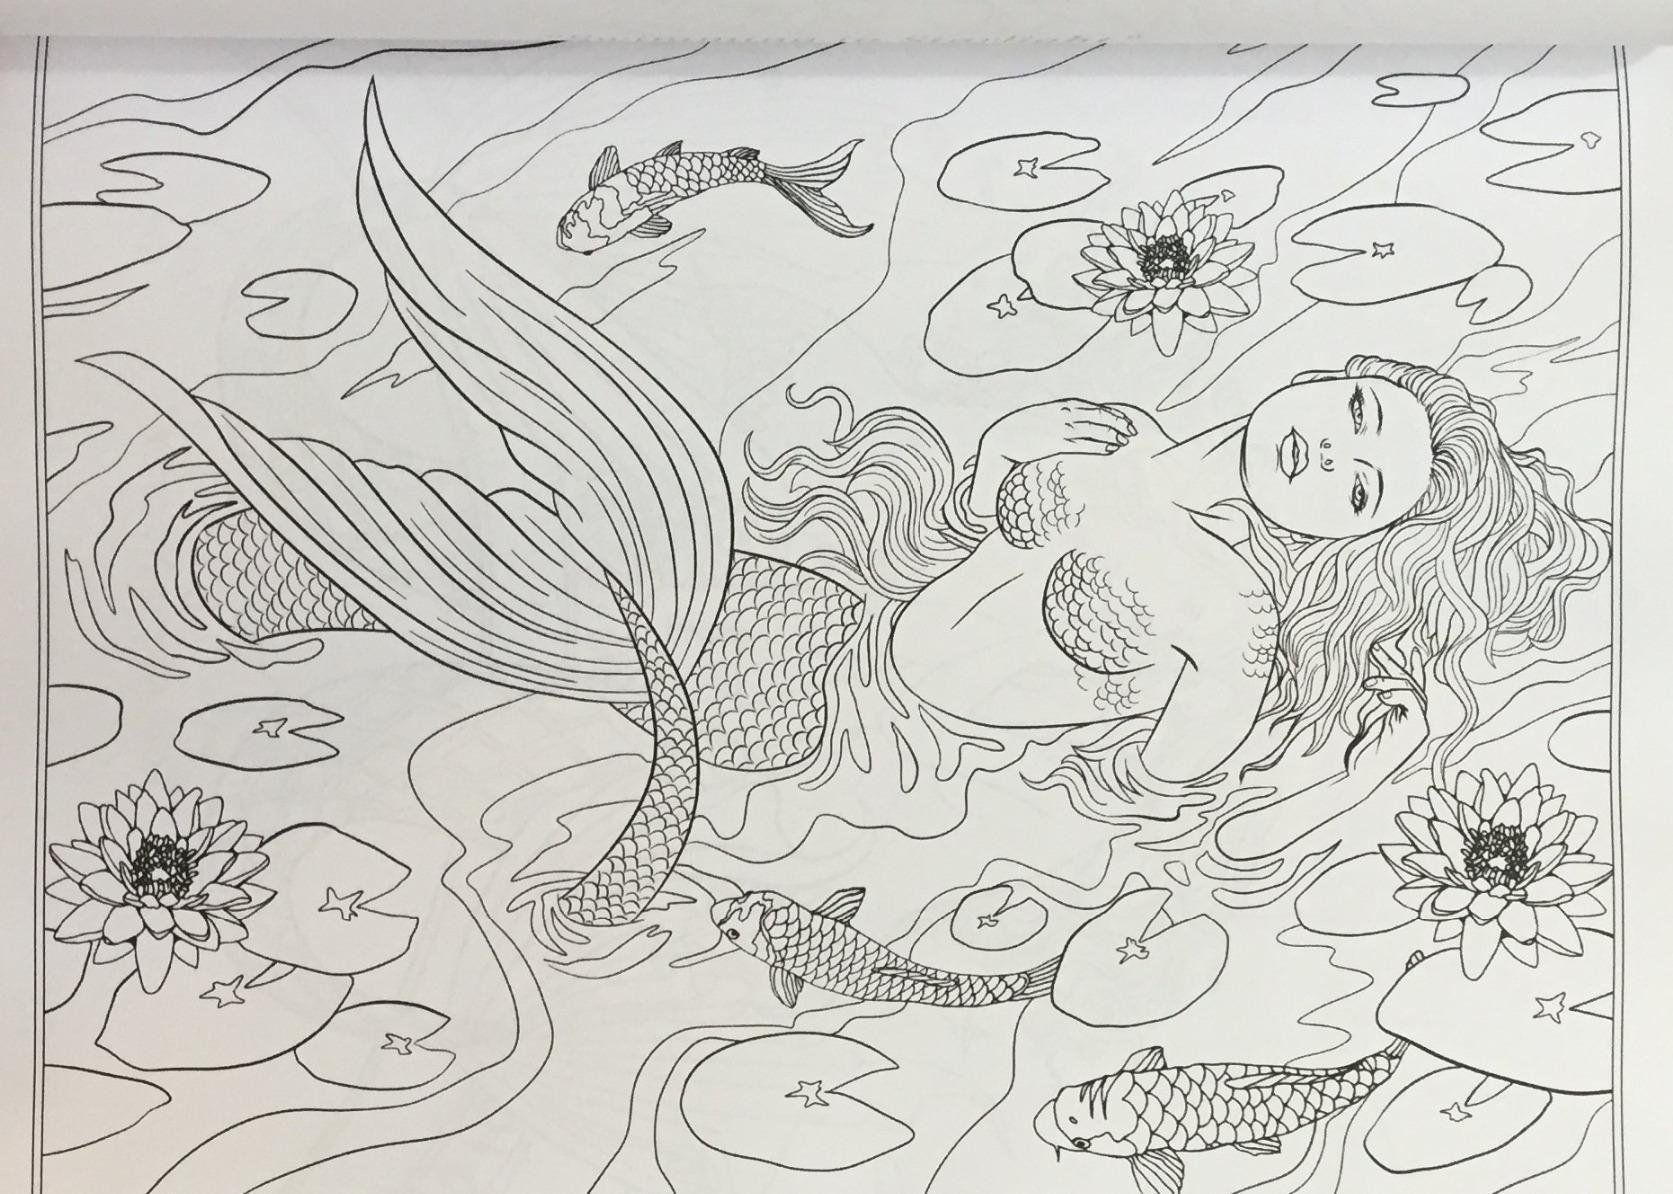 Mythical Mermaids Fantasy Adult Coloring Book Fantasy Coloring By